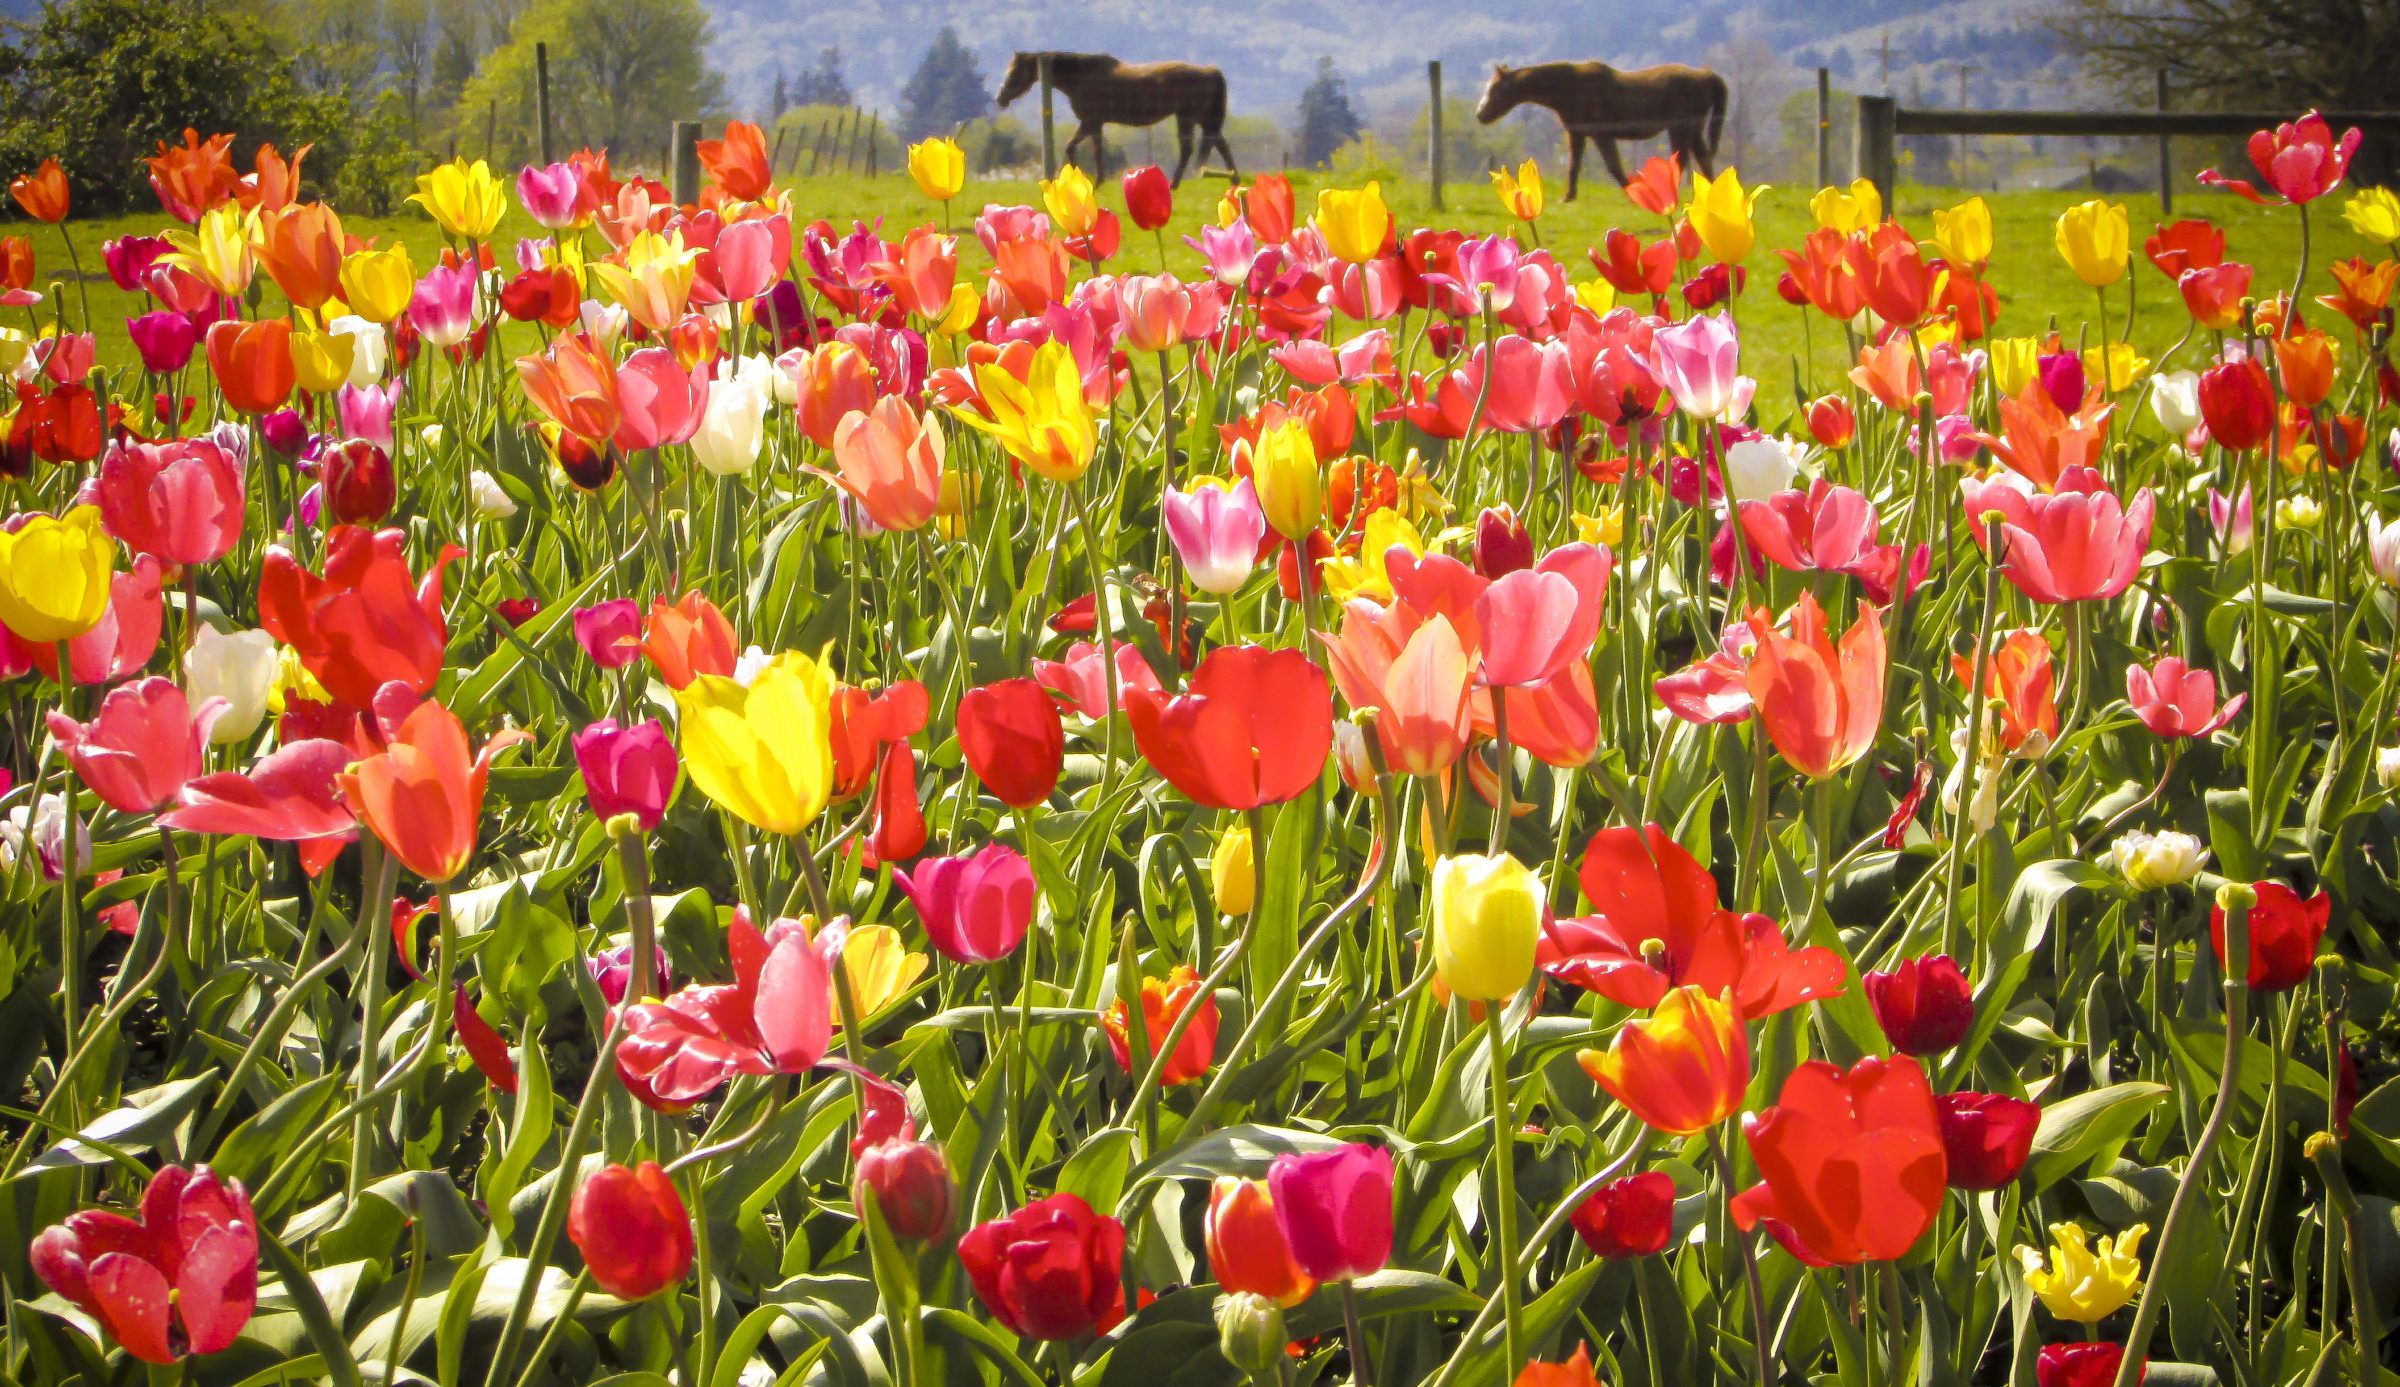 Photo of tulips blooming in a field and horses in the distance, by photographer Stephanie Lowe